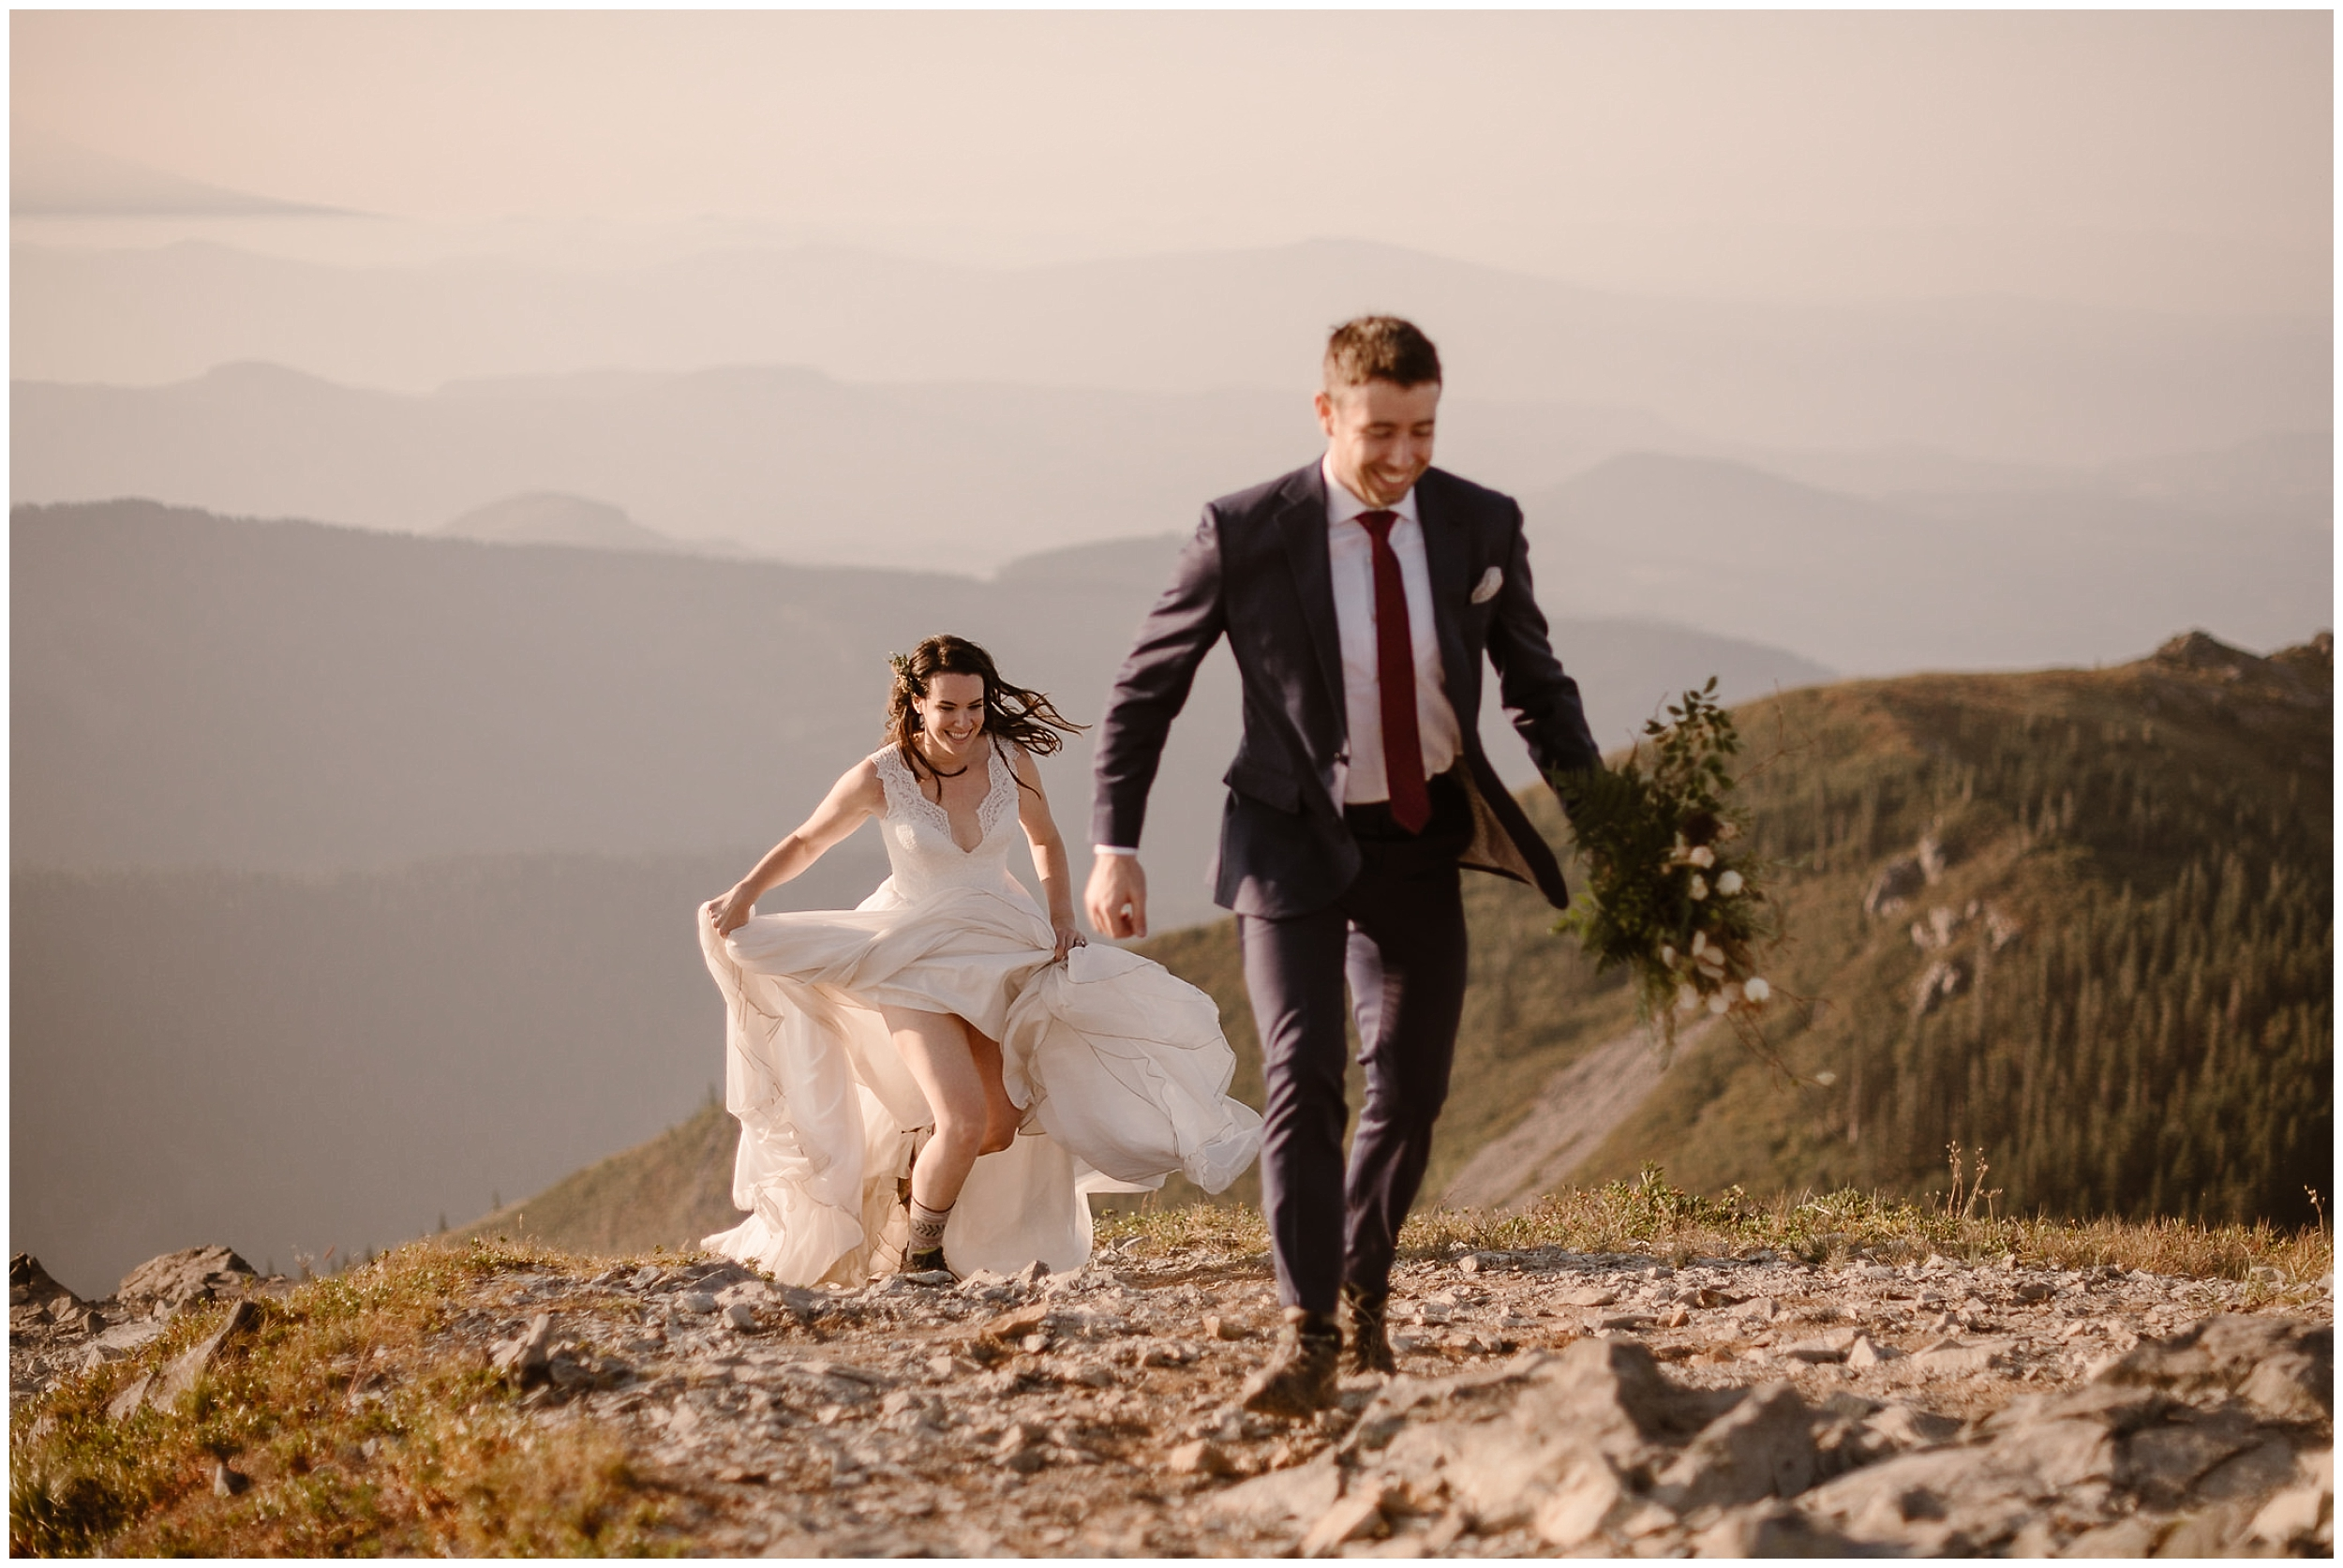 Laurny chases after David during their hike to the top of the Washington mountain. David, hold her bouquet of flowers, treks up in the mountain in his suit.